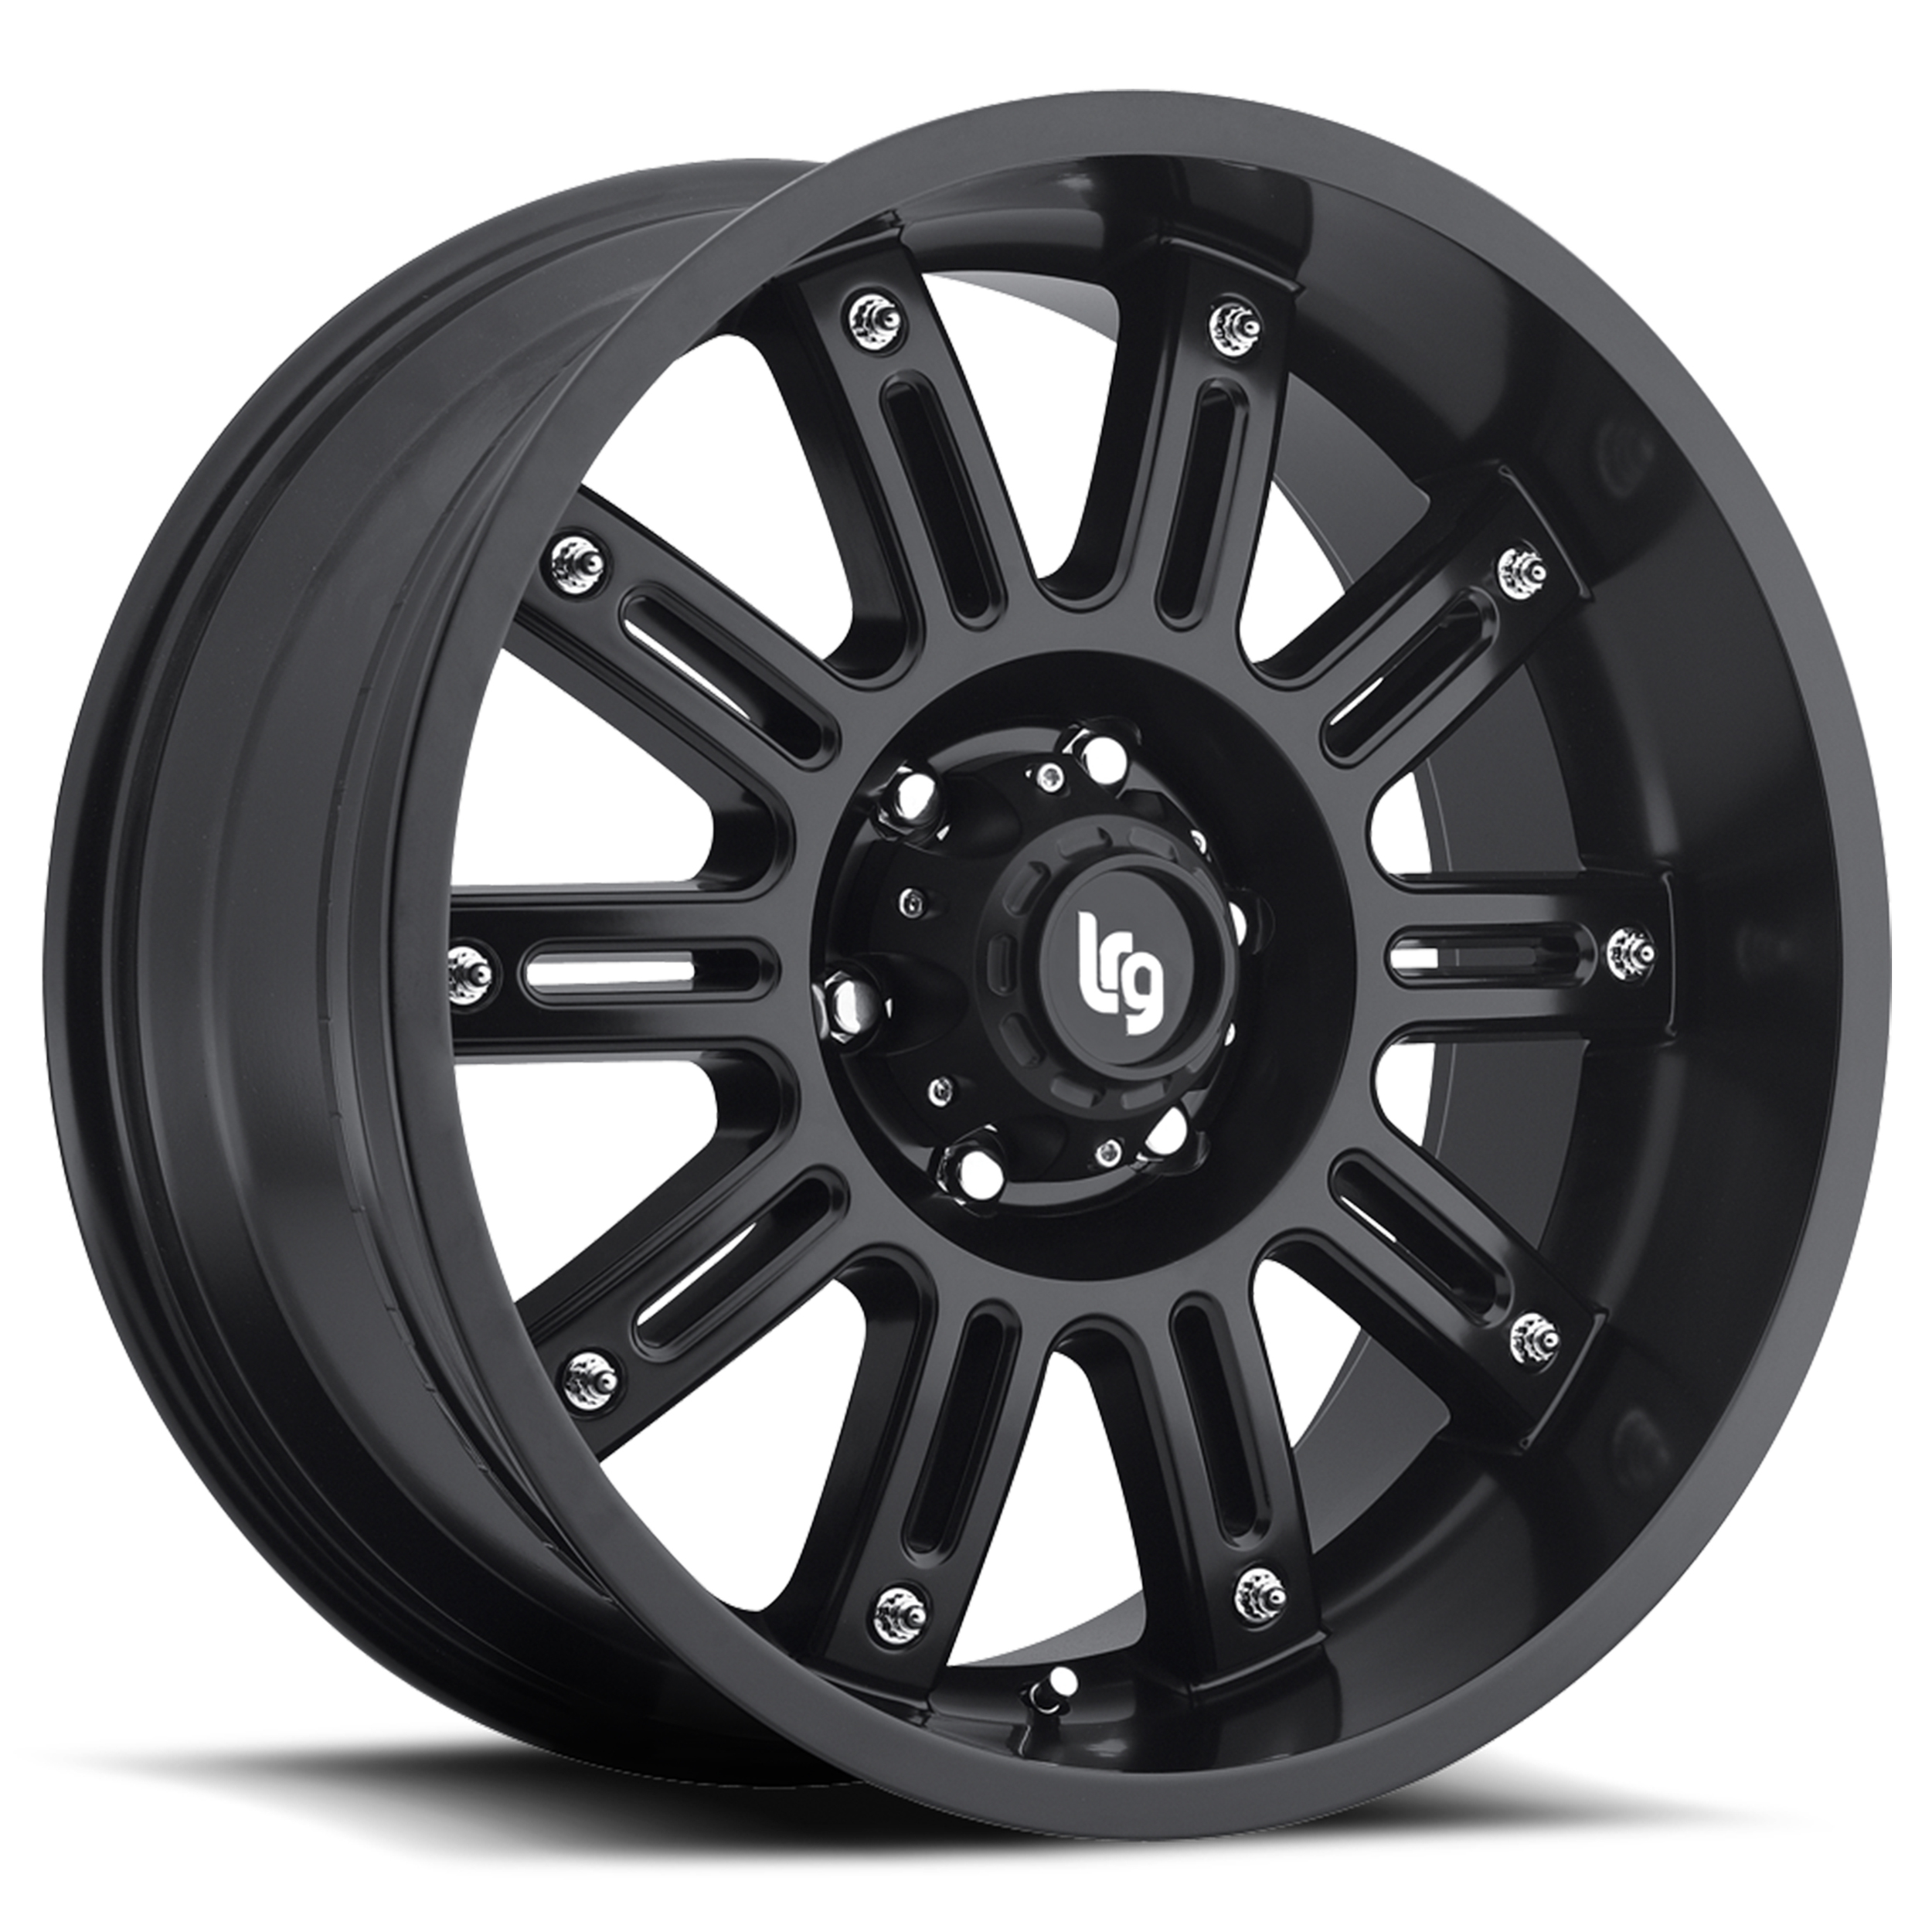 LRG Rims Series 102 Matte Black Wheels